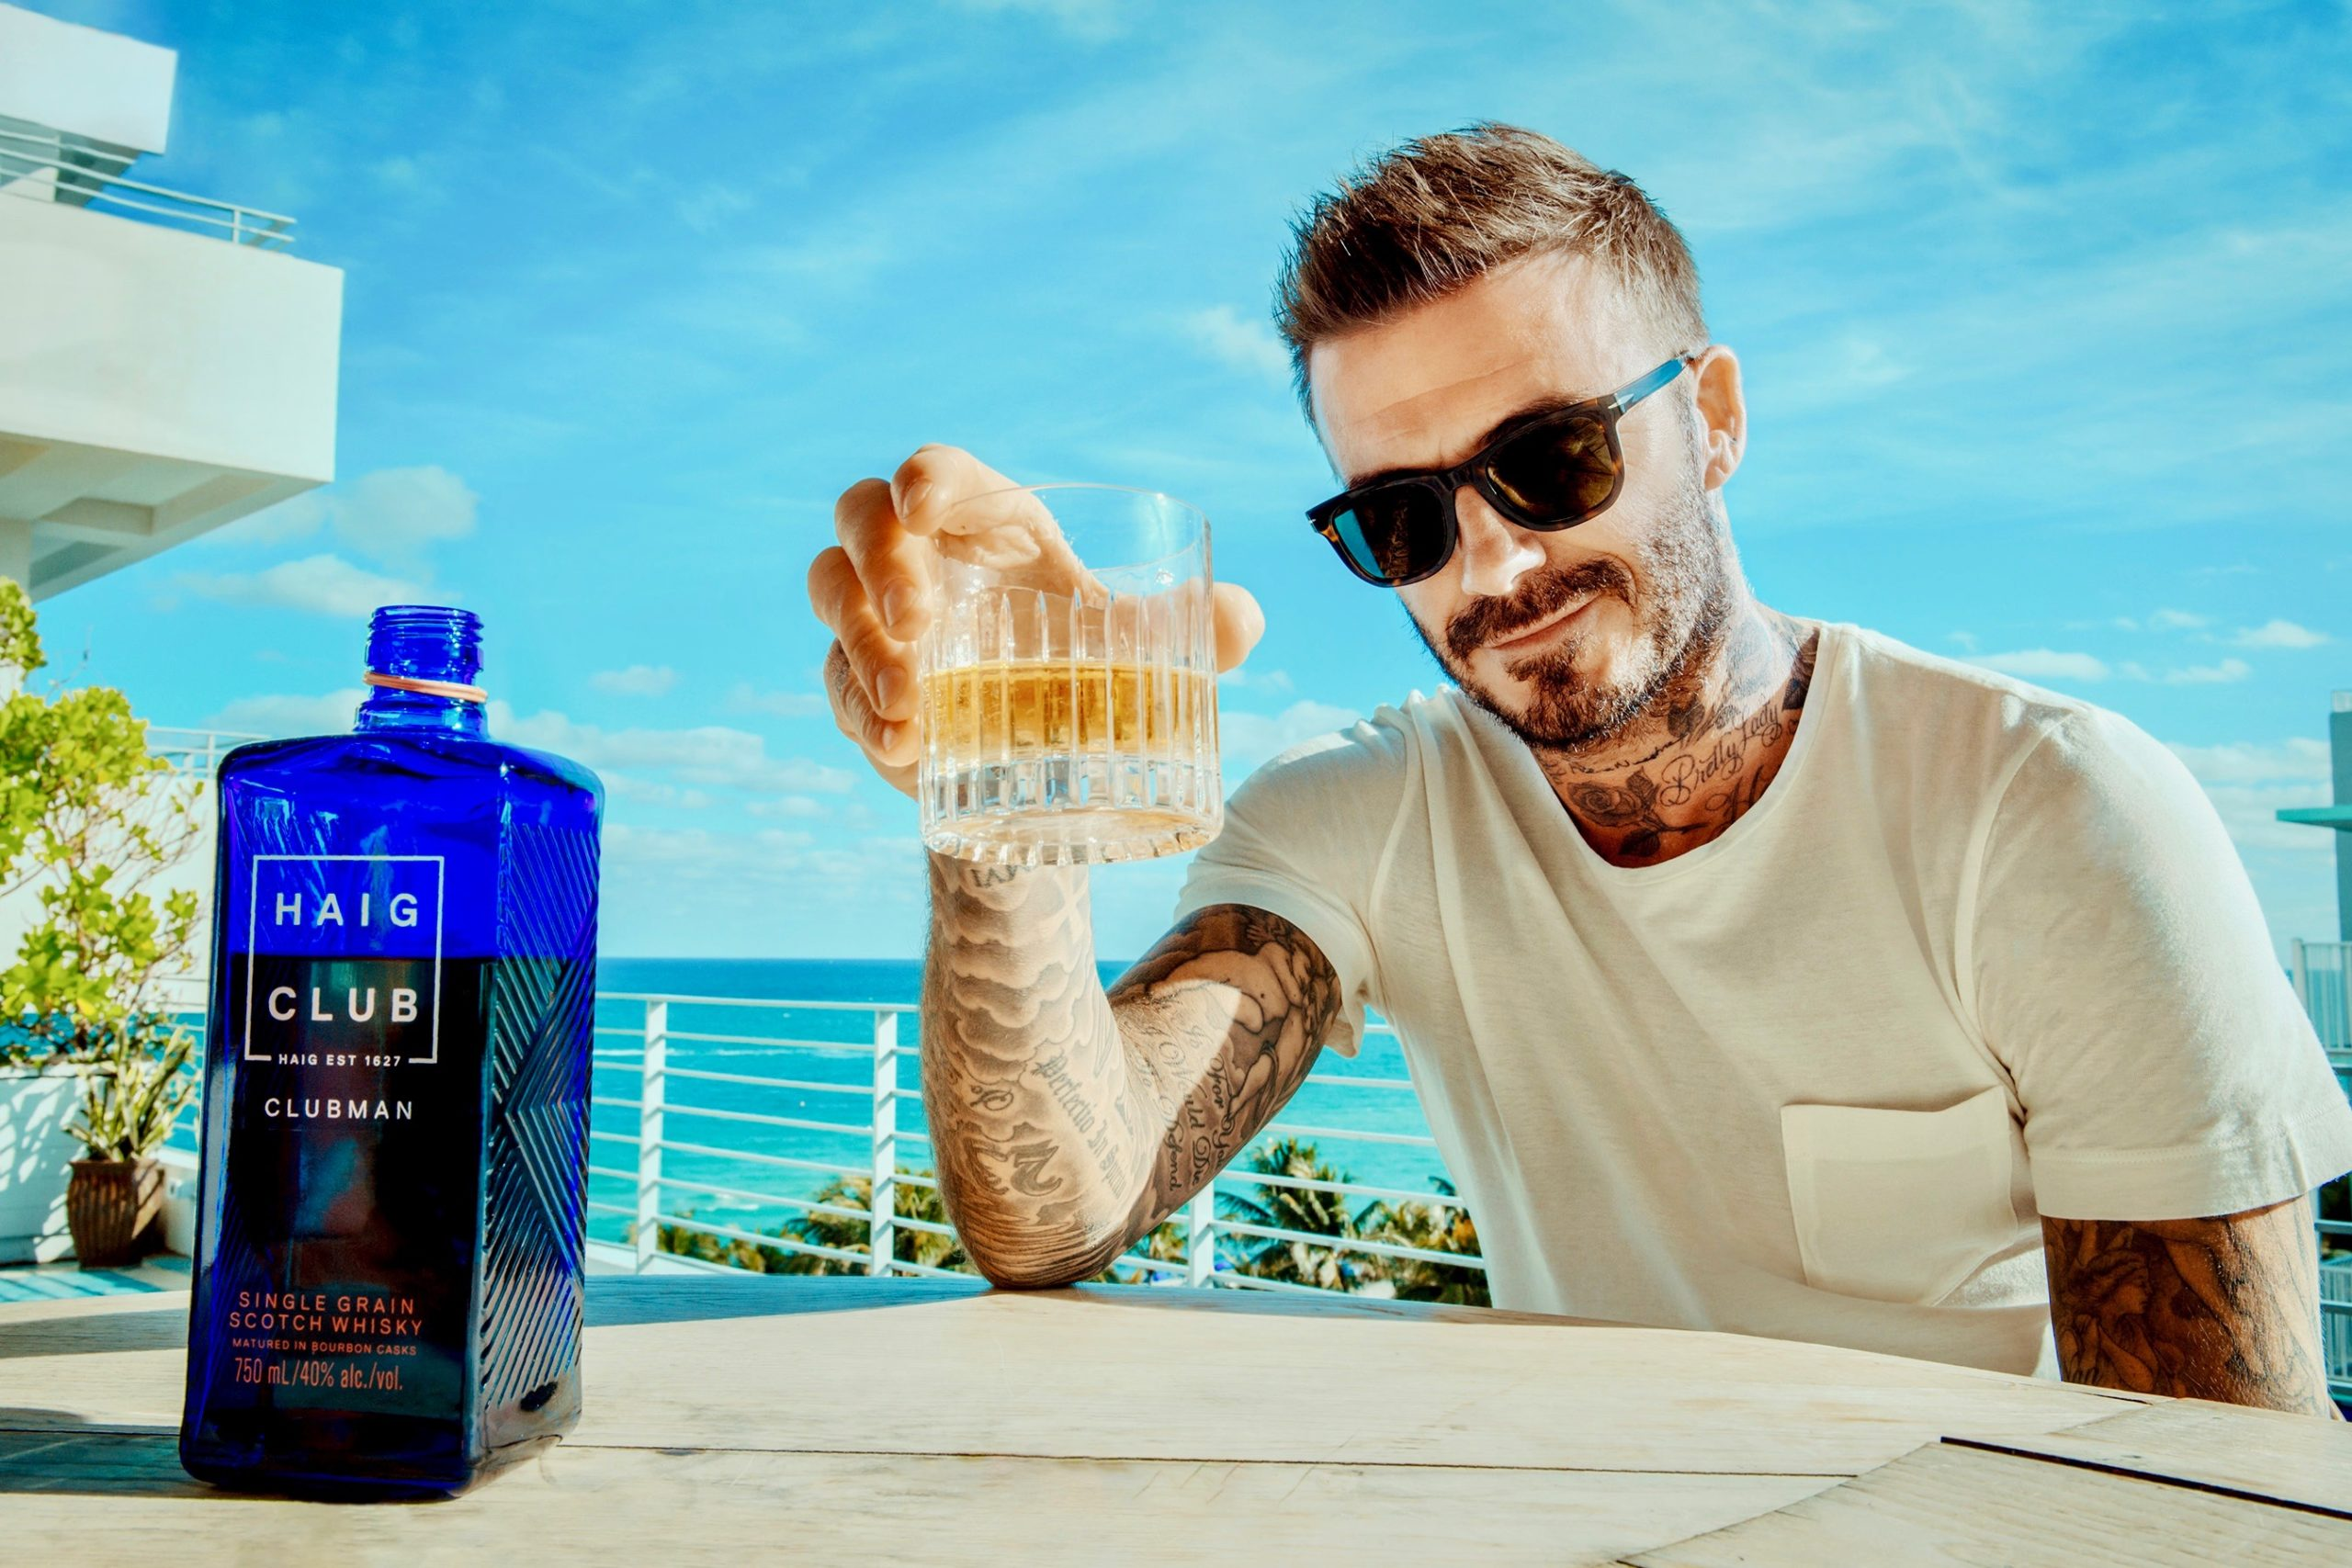 Beckham's Haig Club named whisky of Inter Miami - The Drinks Business